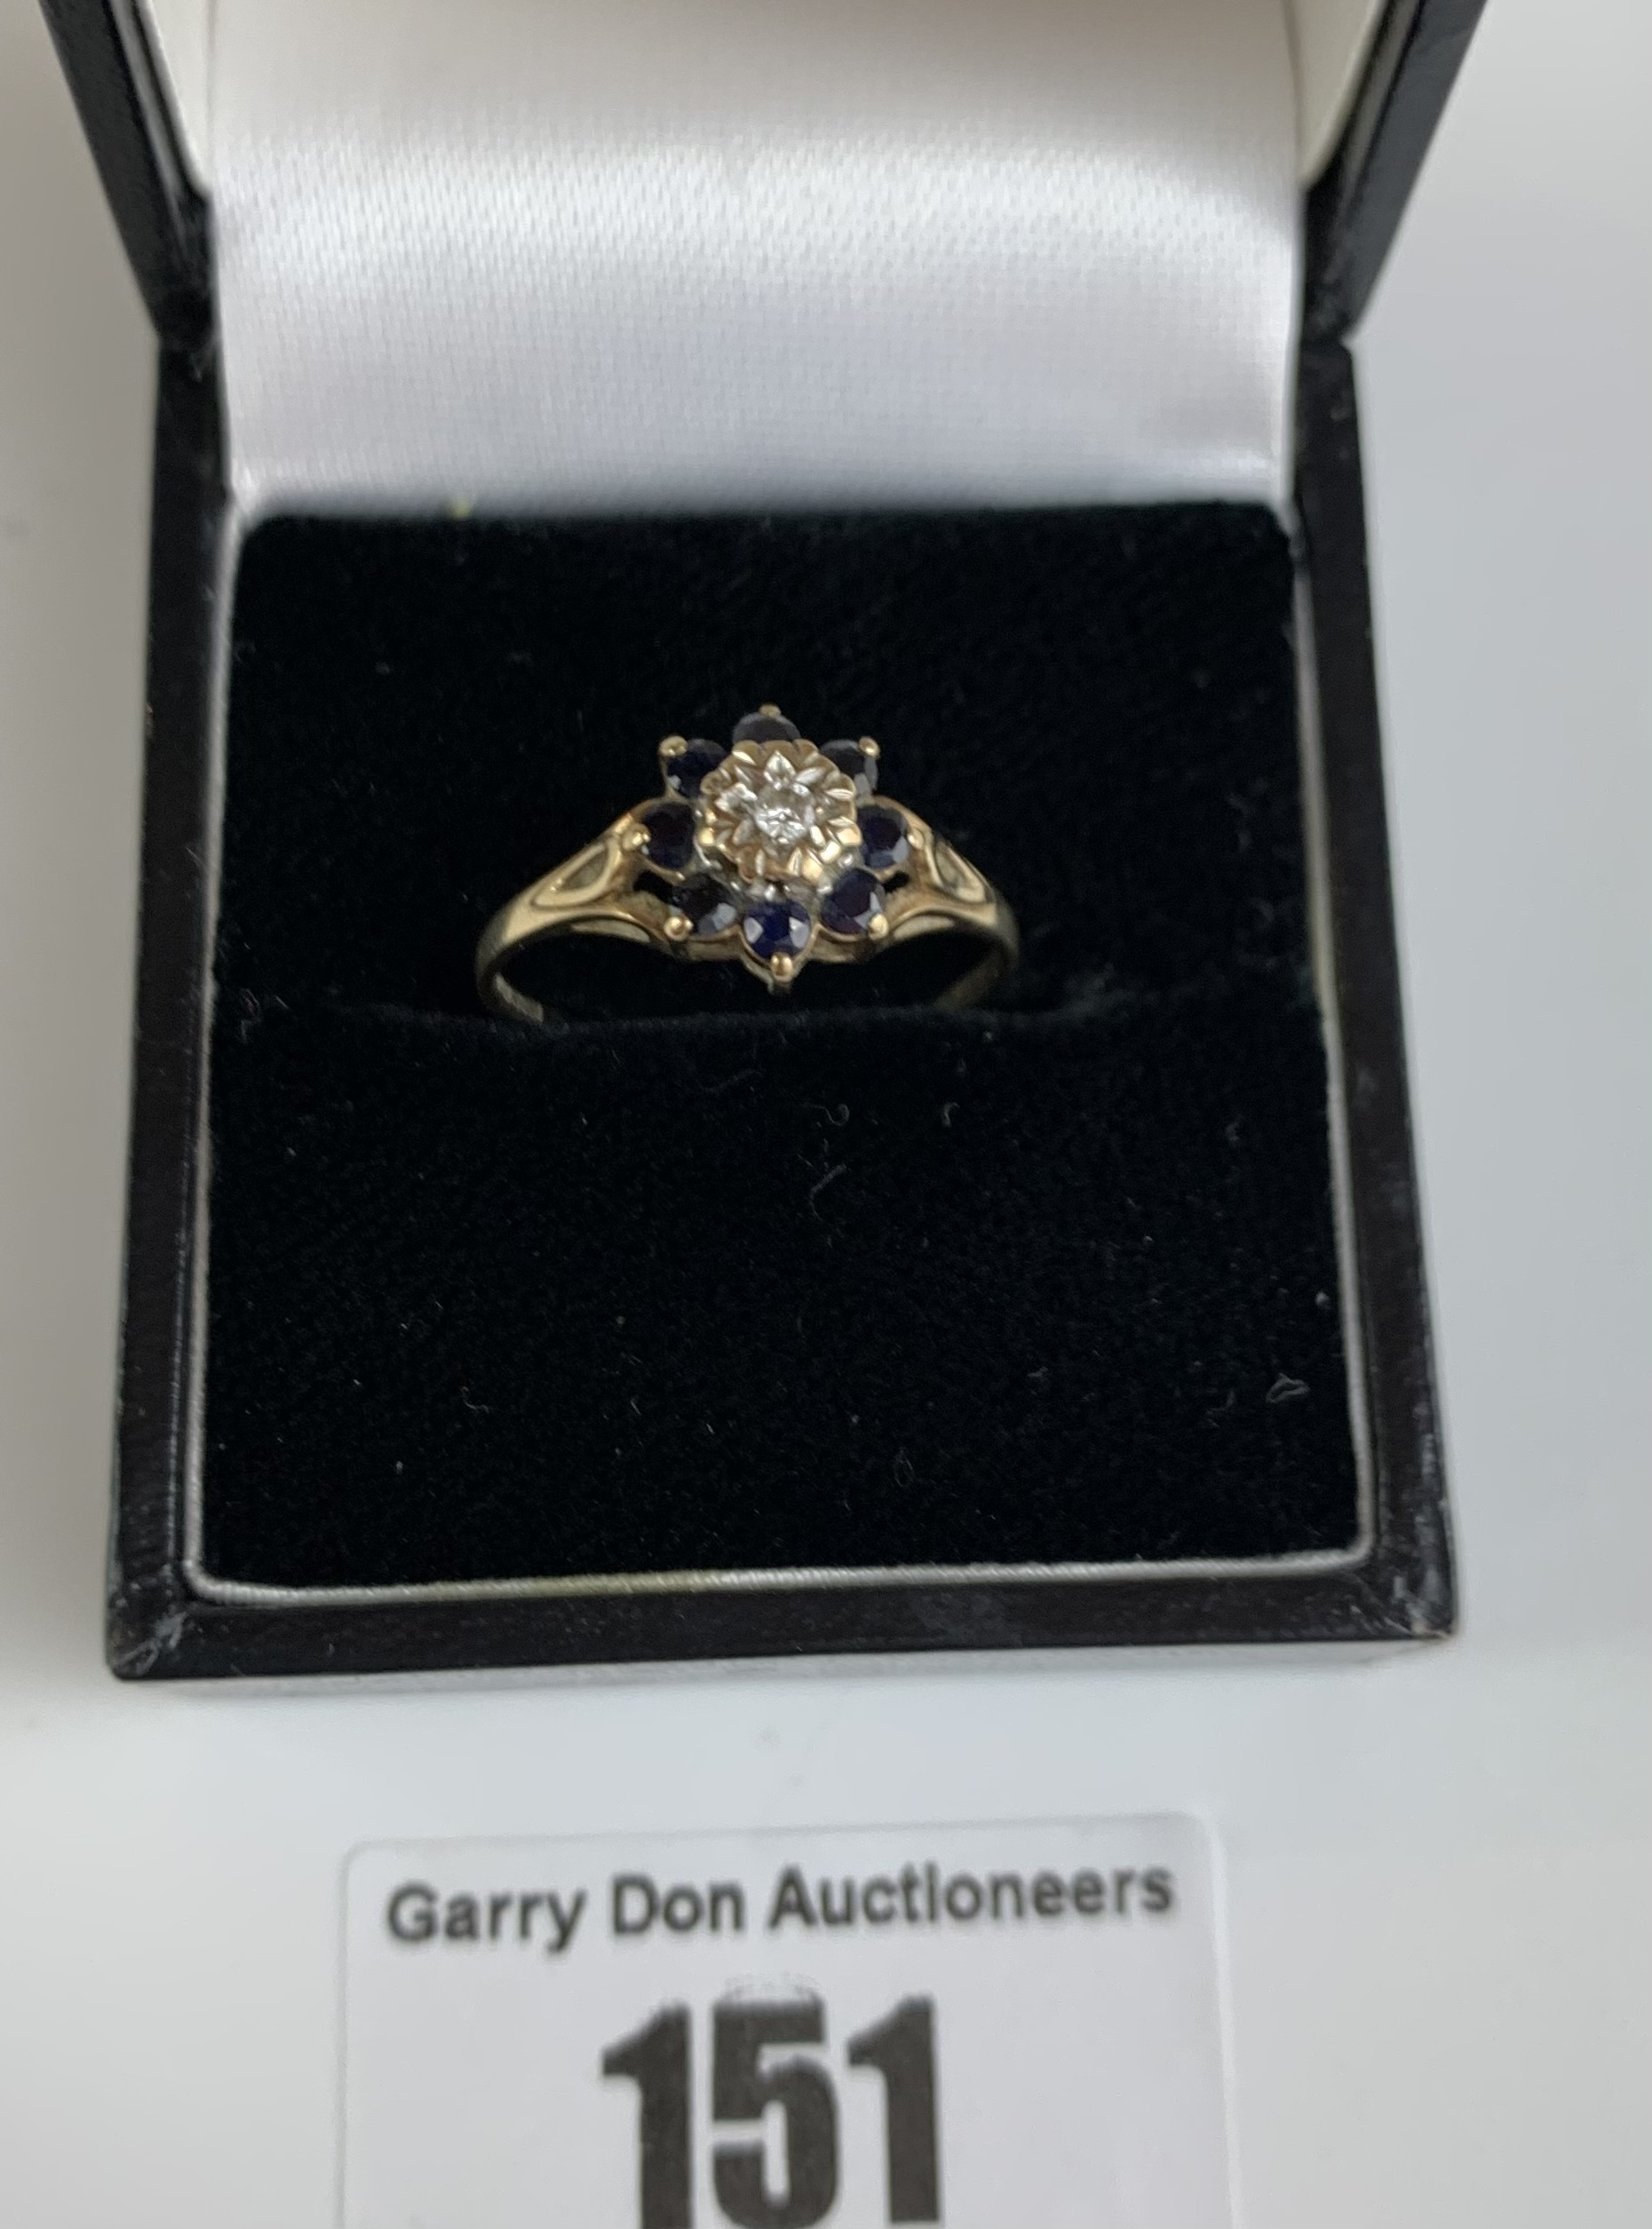 9k gold ring with diamond and black stones, size O, w: 1.5 gms - Image 4 of 4